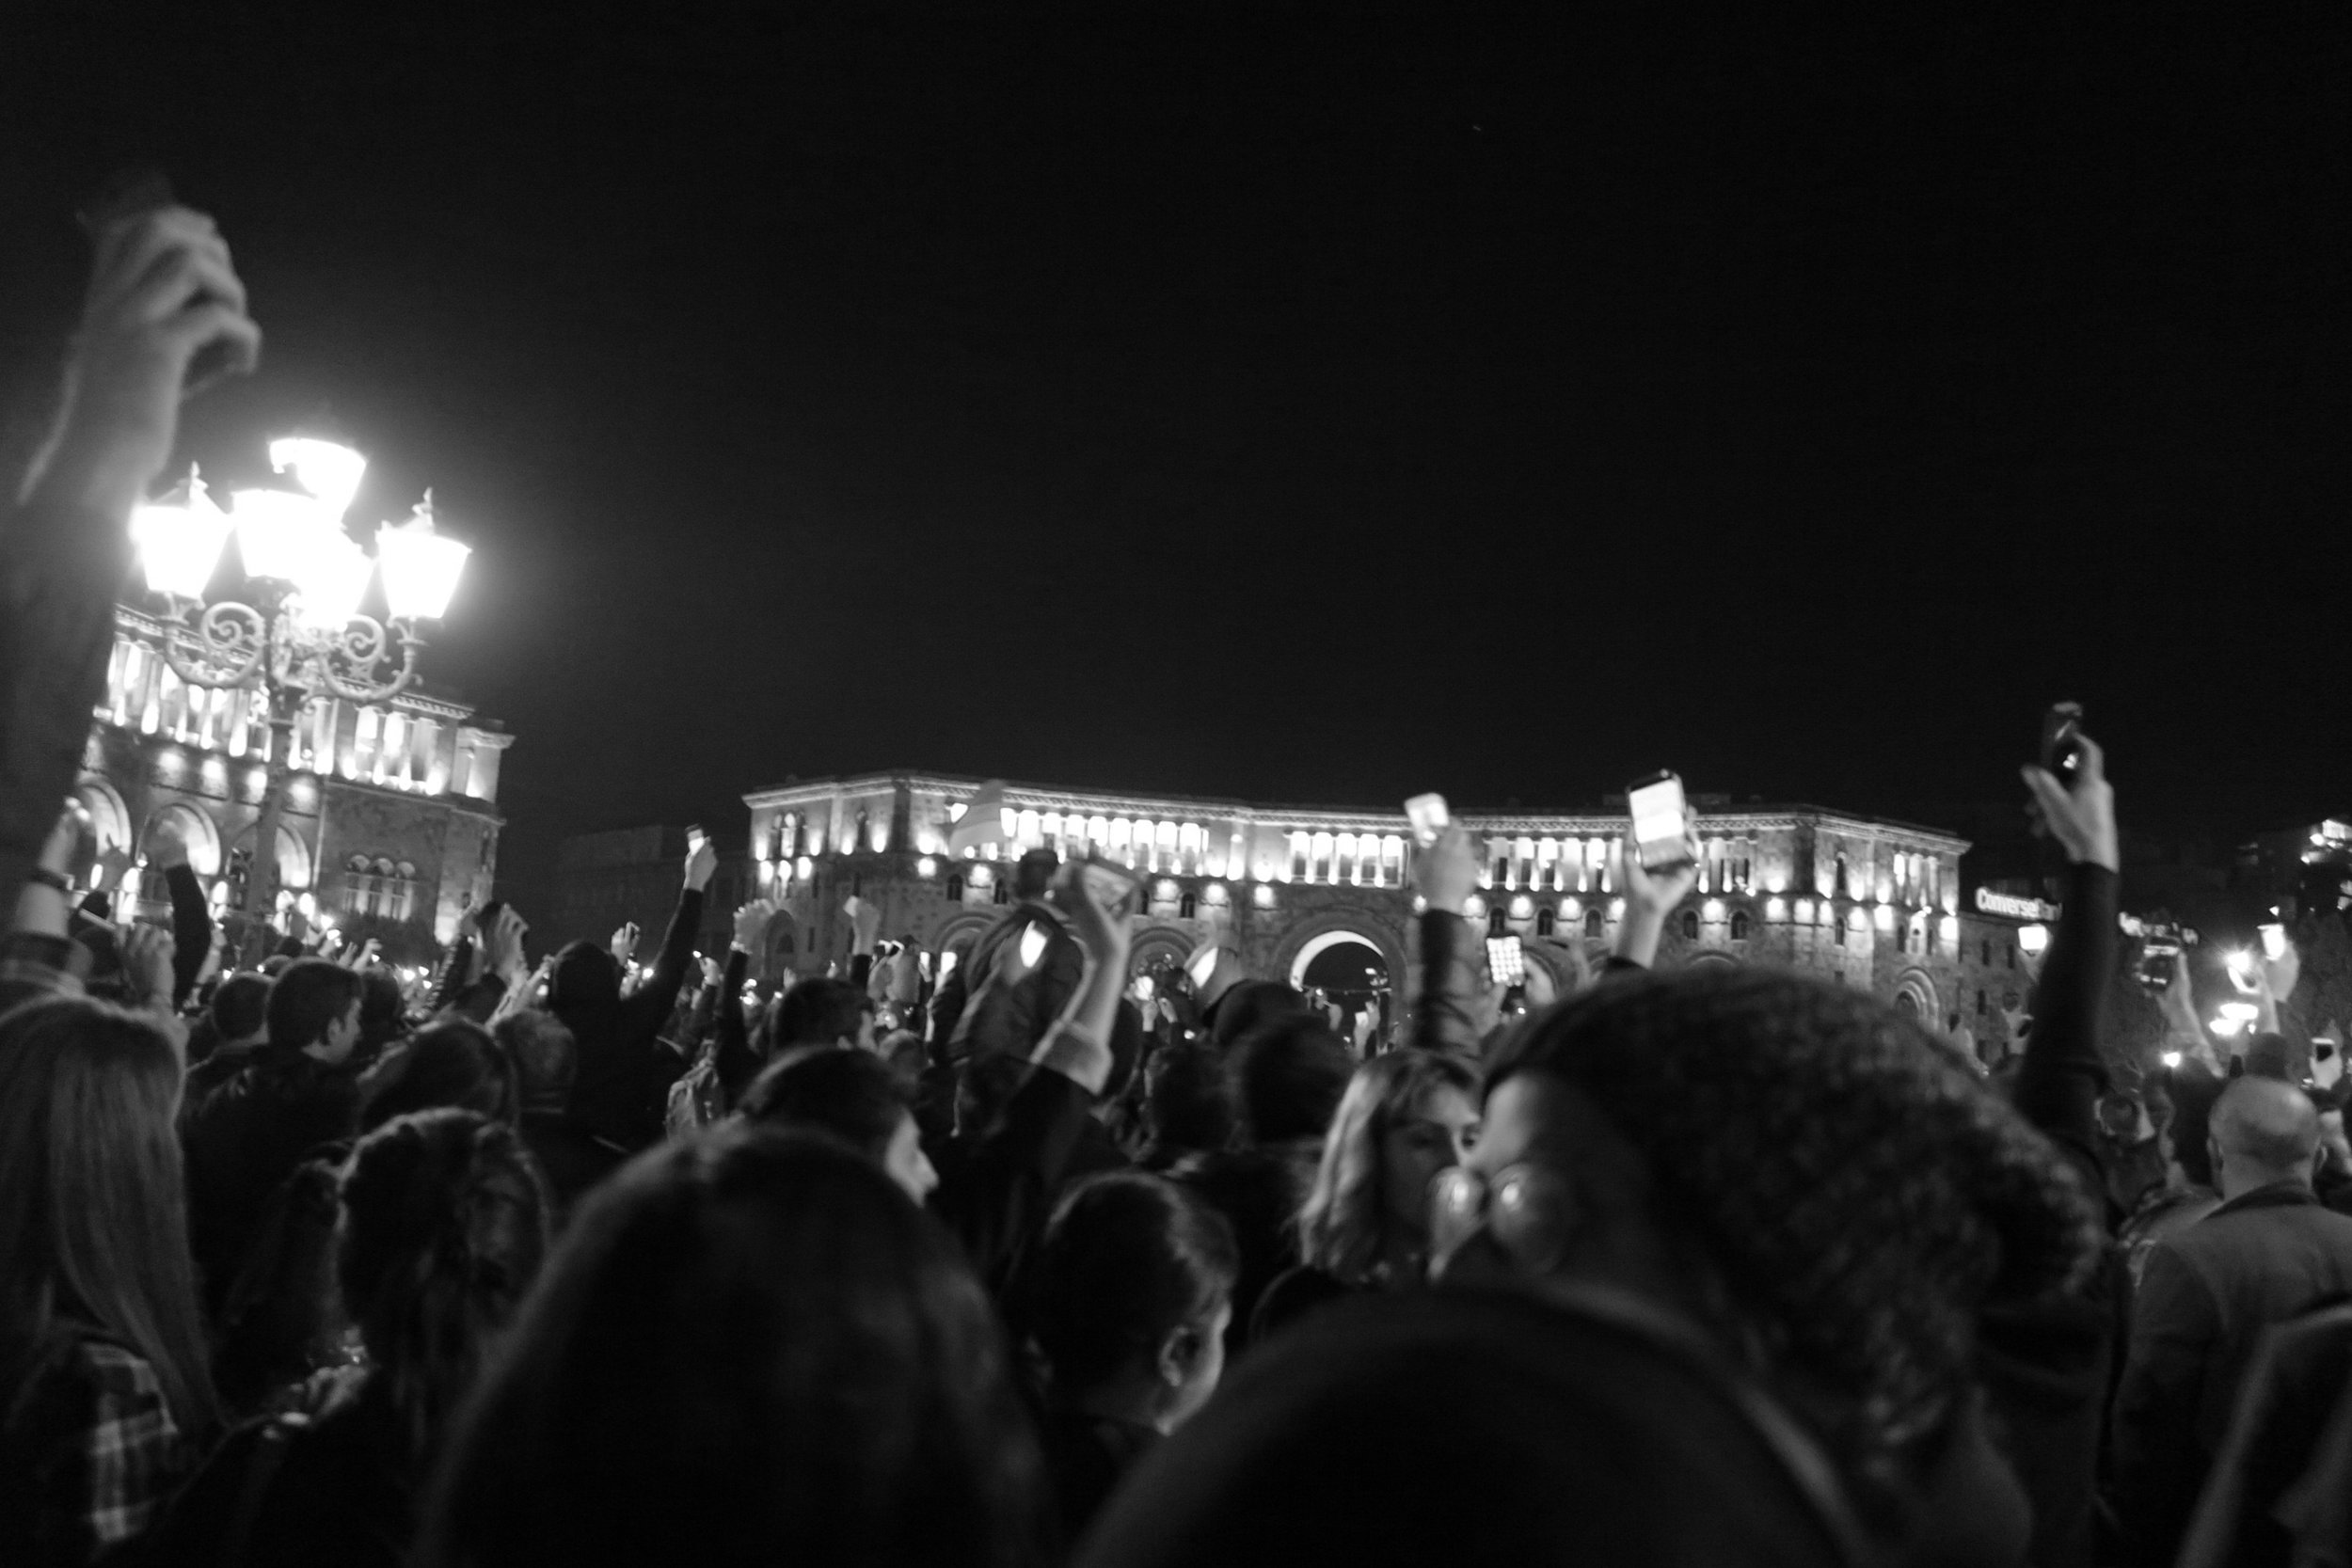 crowds on republic square on april 17th, listening to a speech by nikol pashinyan.